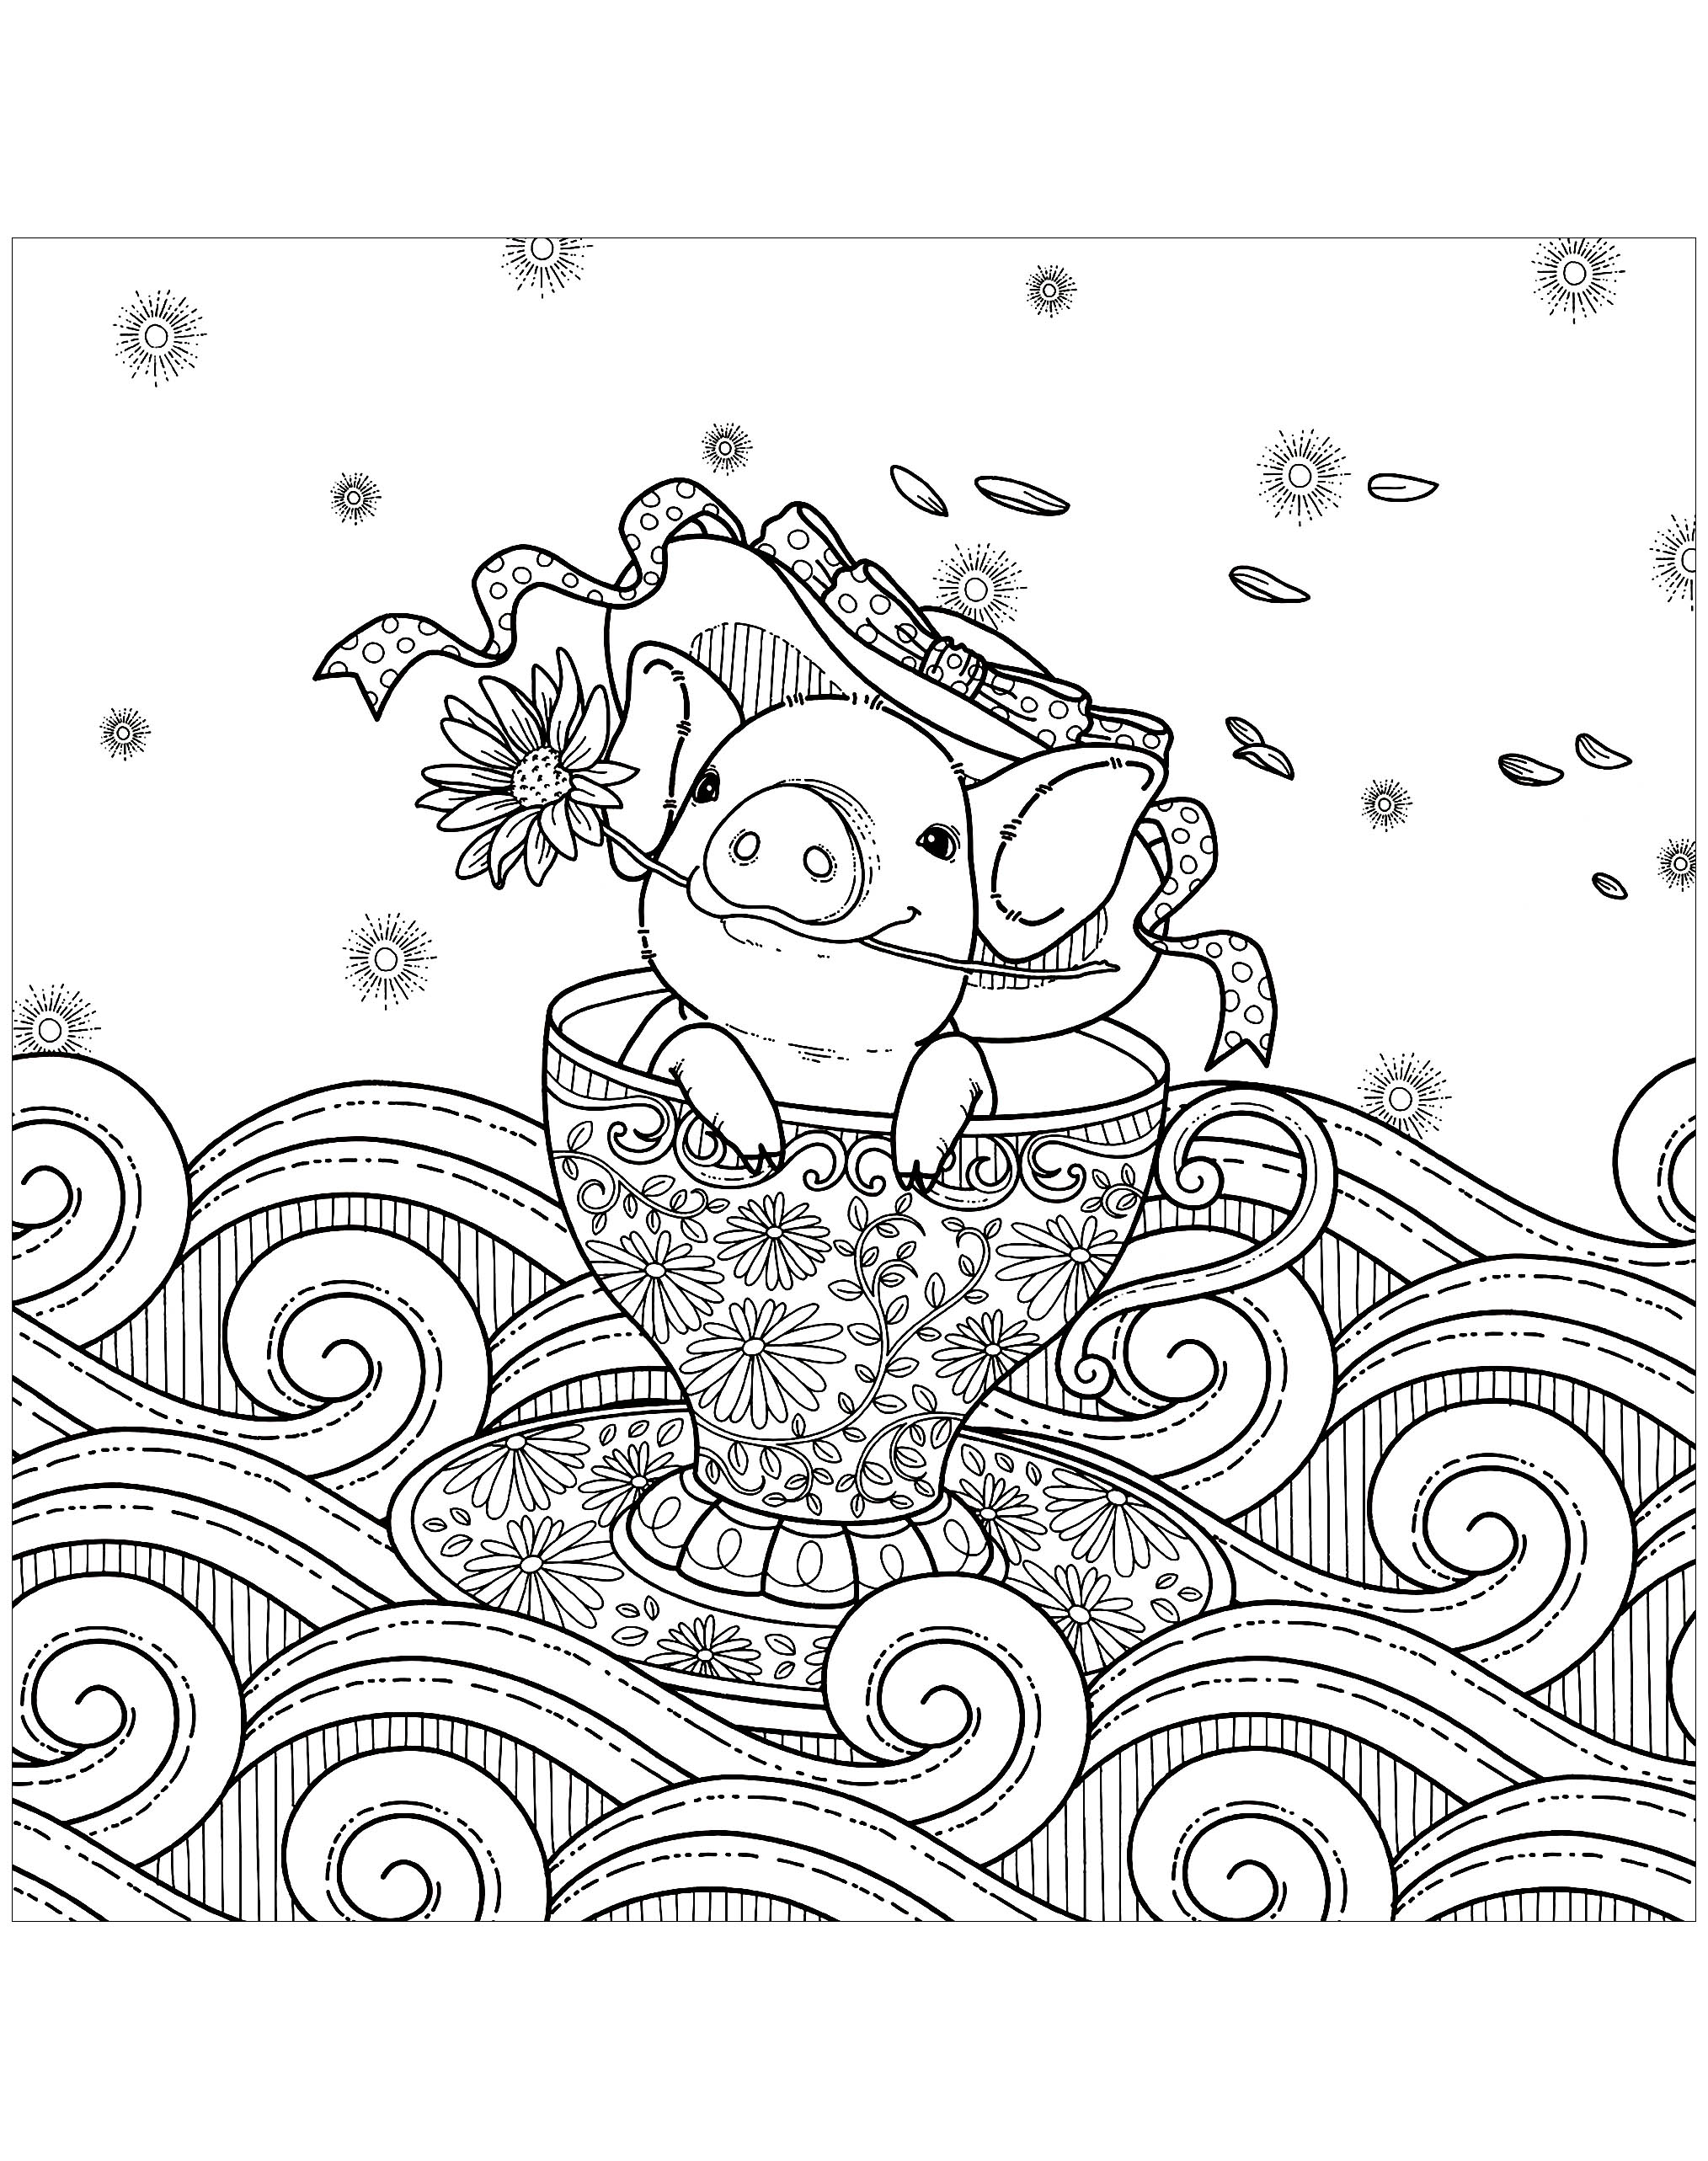 Pig in a cup Pigs Adult Coloring